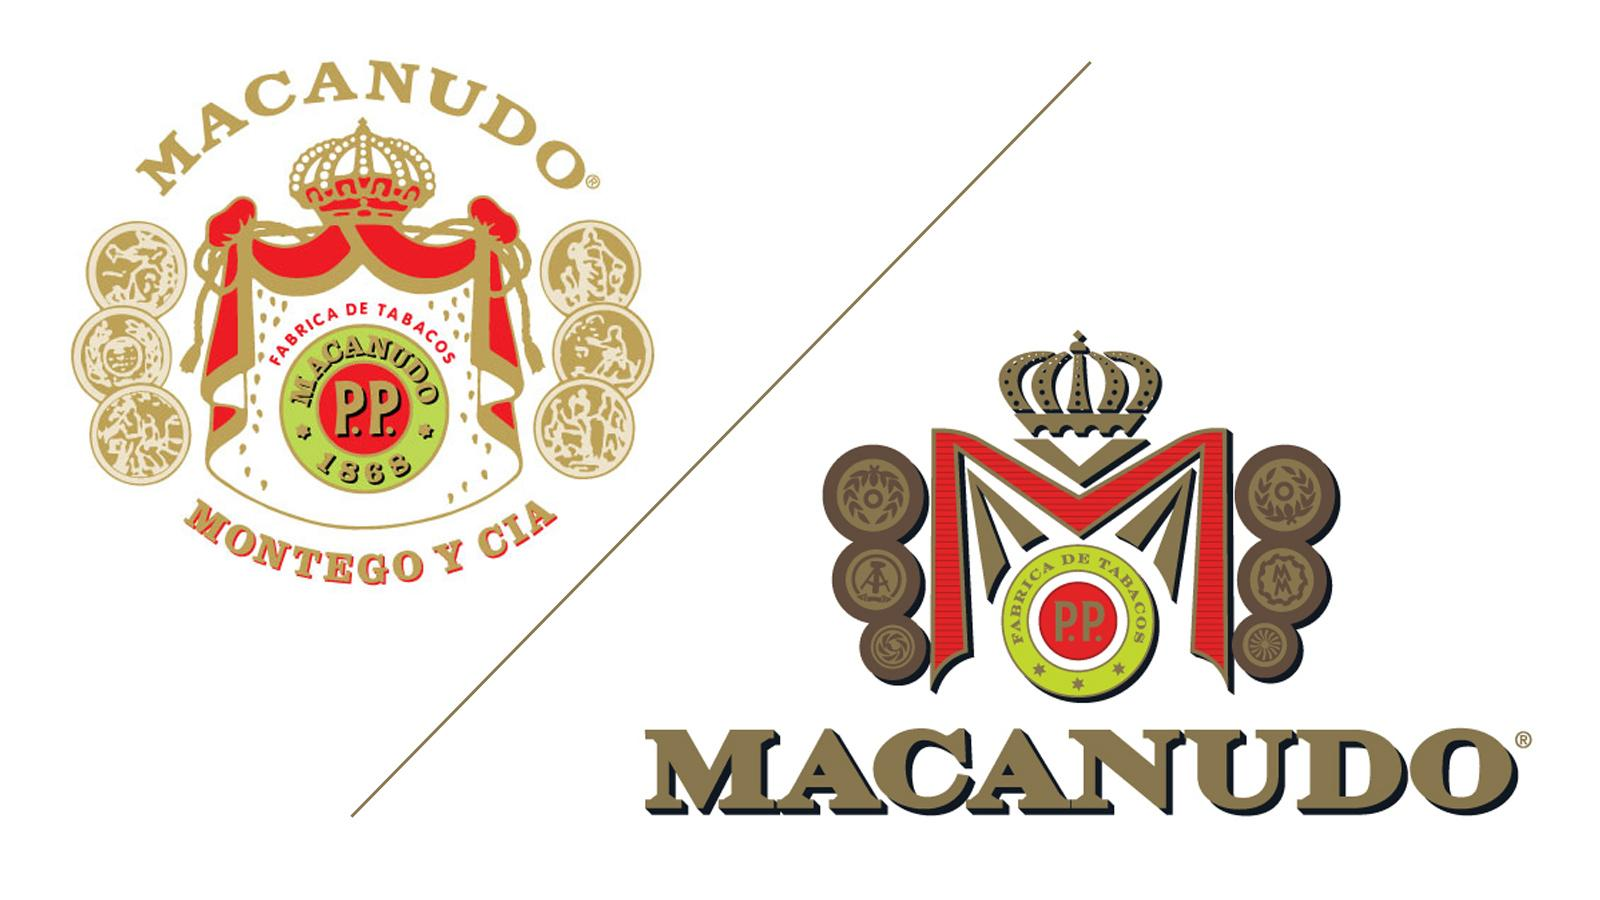 Iconic Macanudo Logo Gets New Modern Look